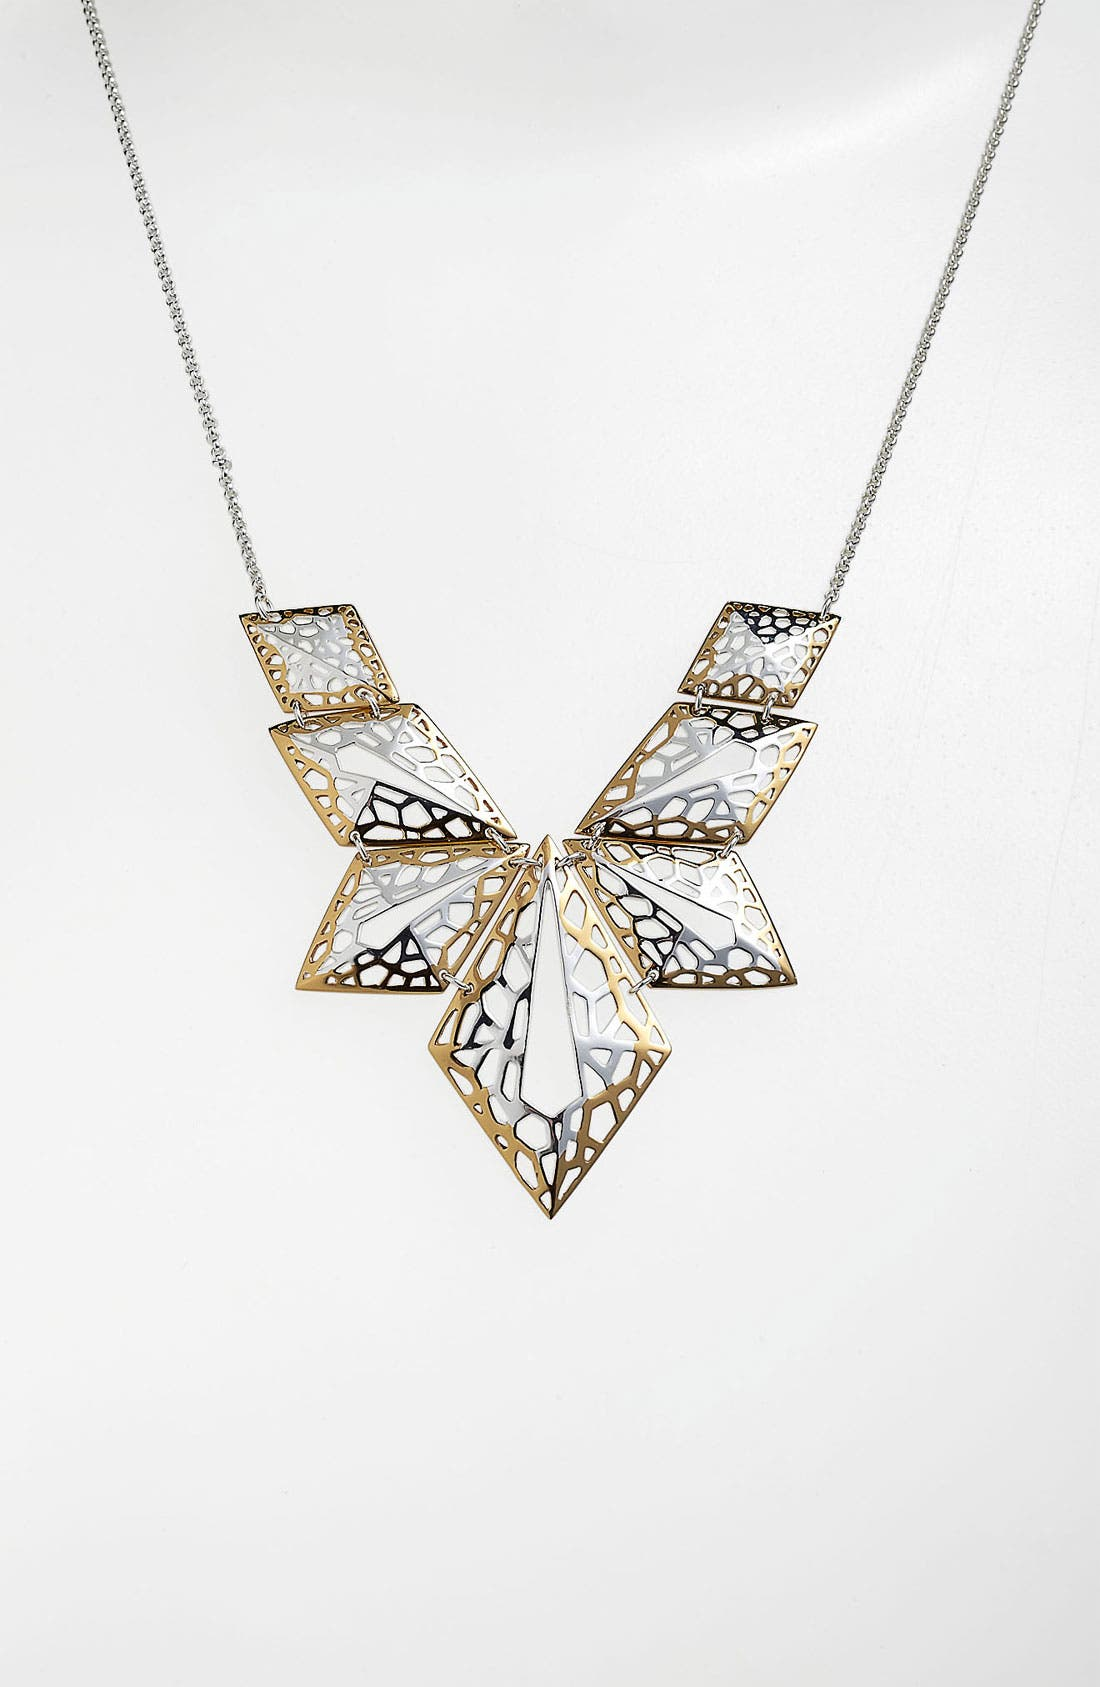 Alternate Image 1 Selected - Argento Vivo 'Prism' Geometric Statement Necklace